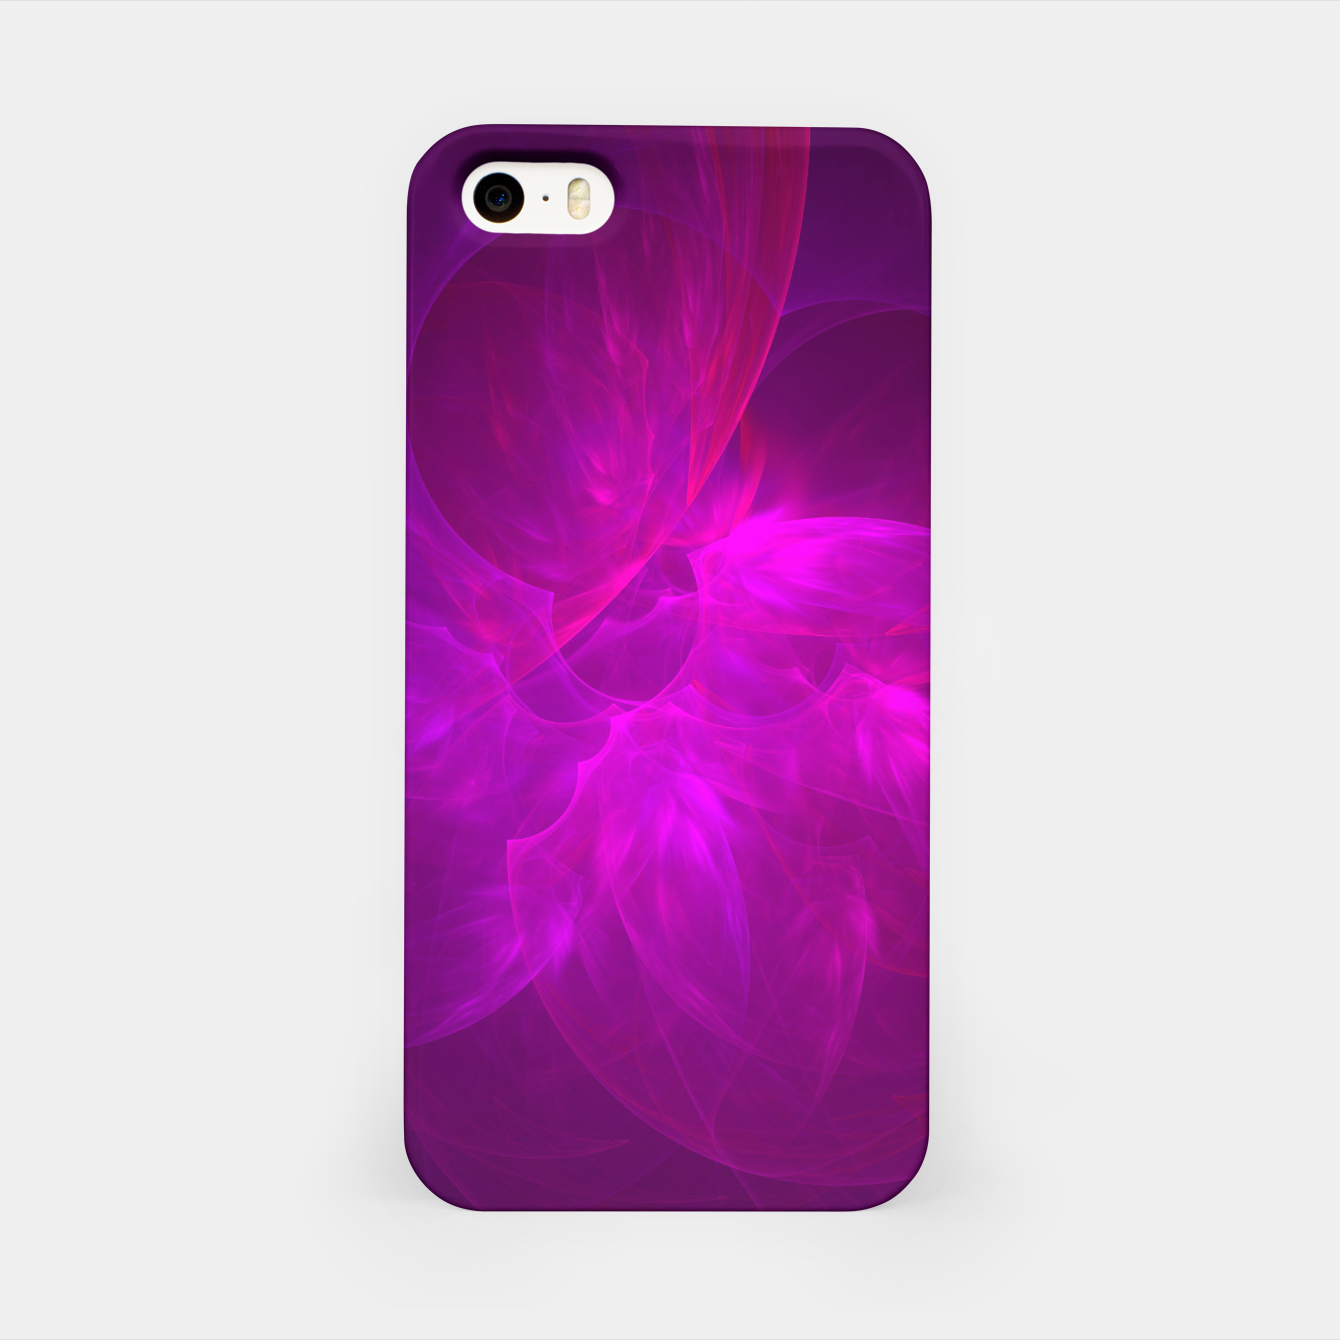 Zdjęcie Magenta Illusion Abstract Fractal Art Design iPhone Case - Live Heroes